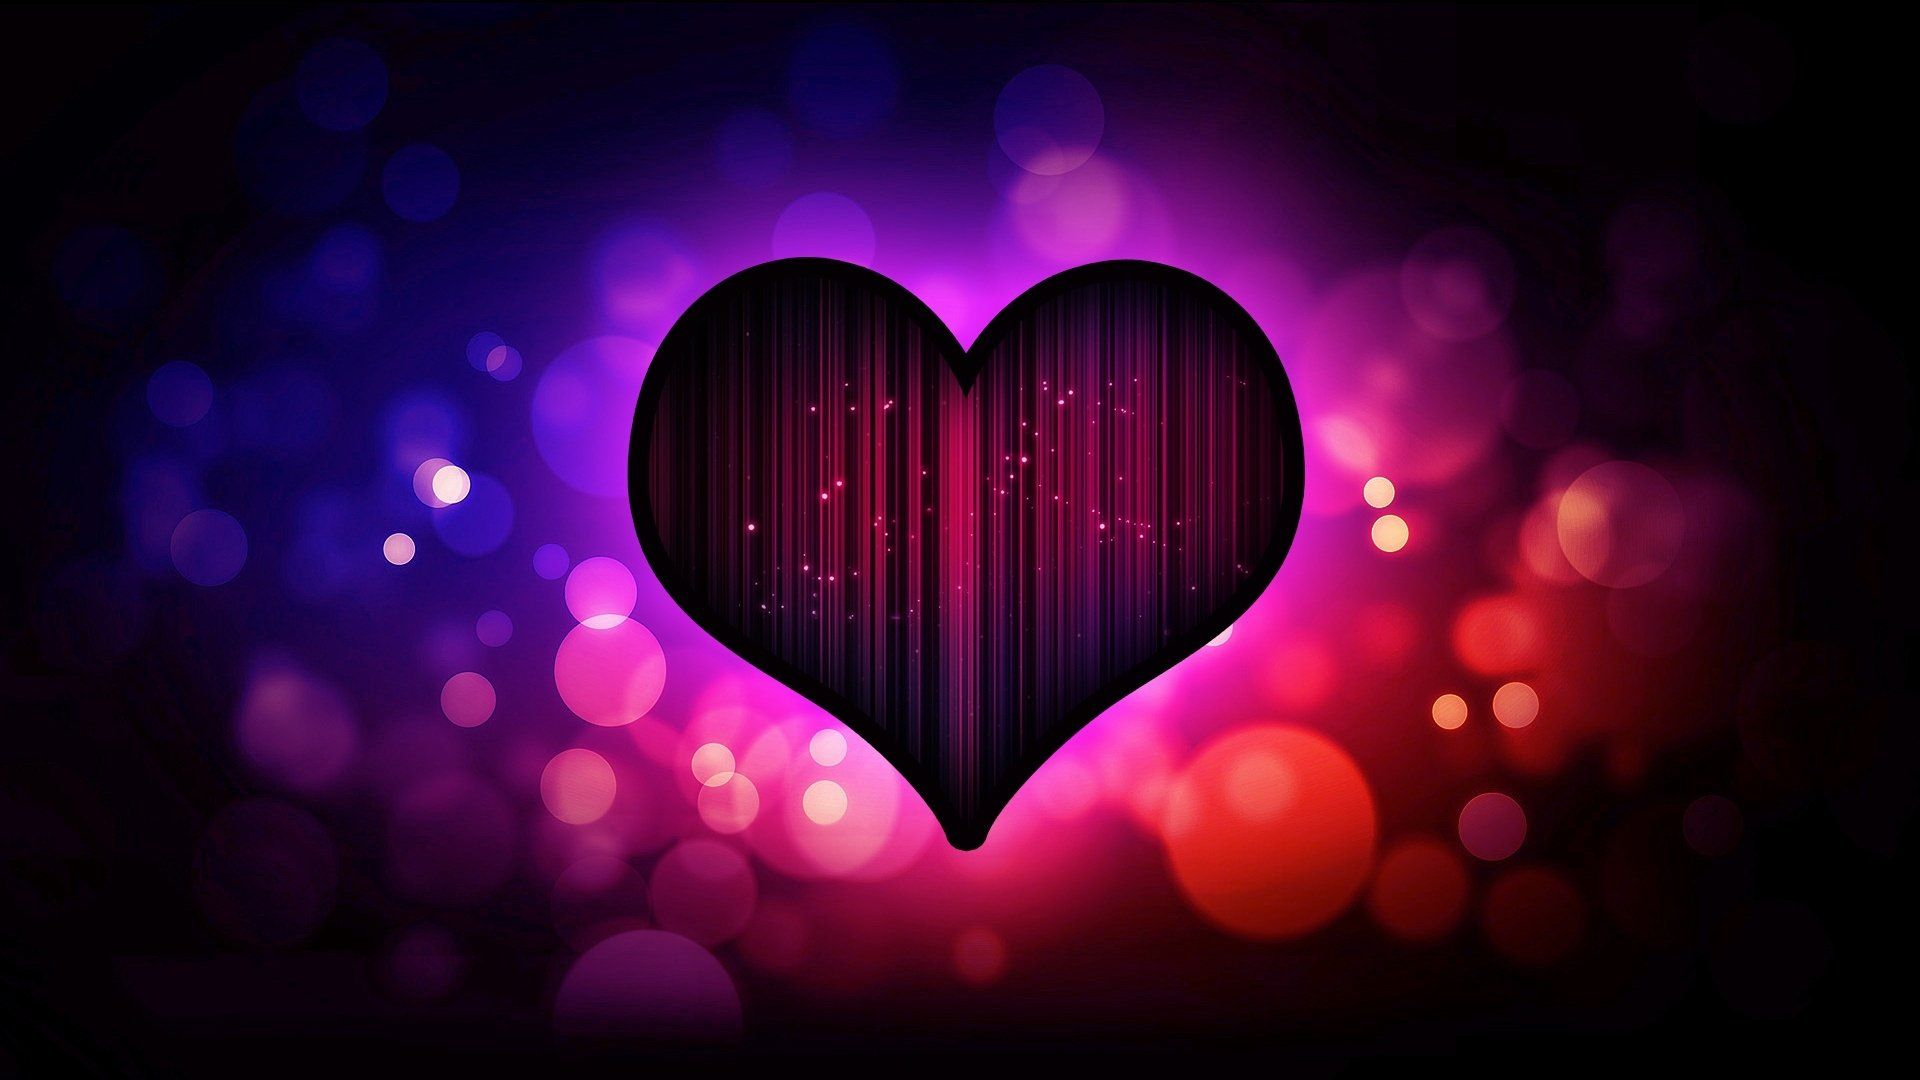 cool love earth and heart psp wallpapers mobile phone hd 1440×900